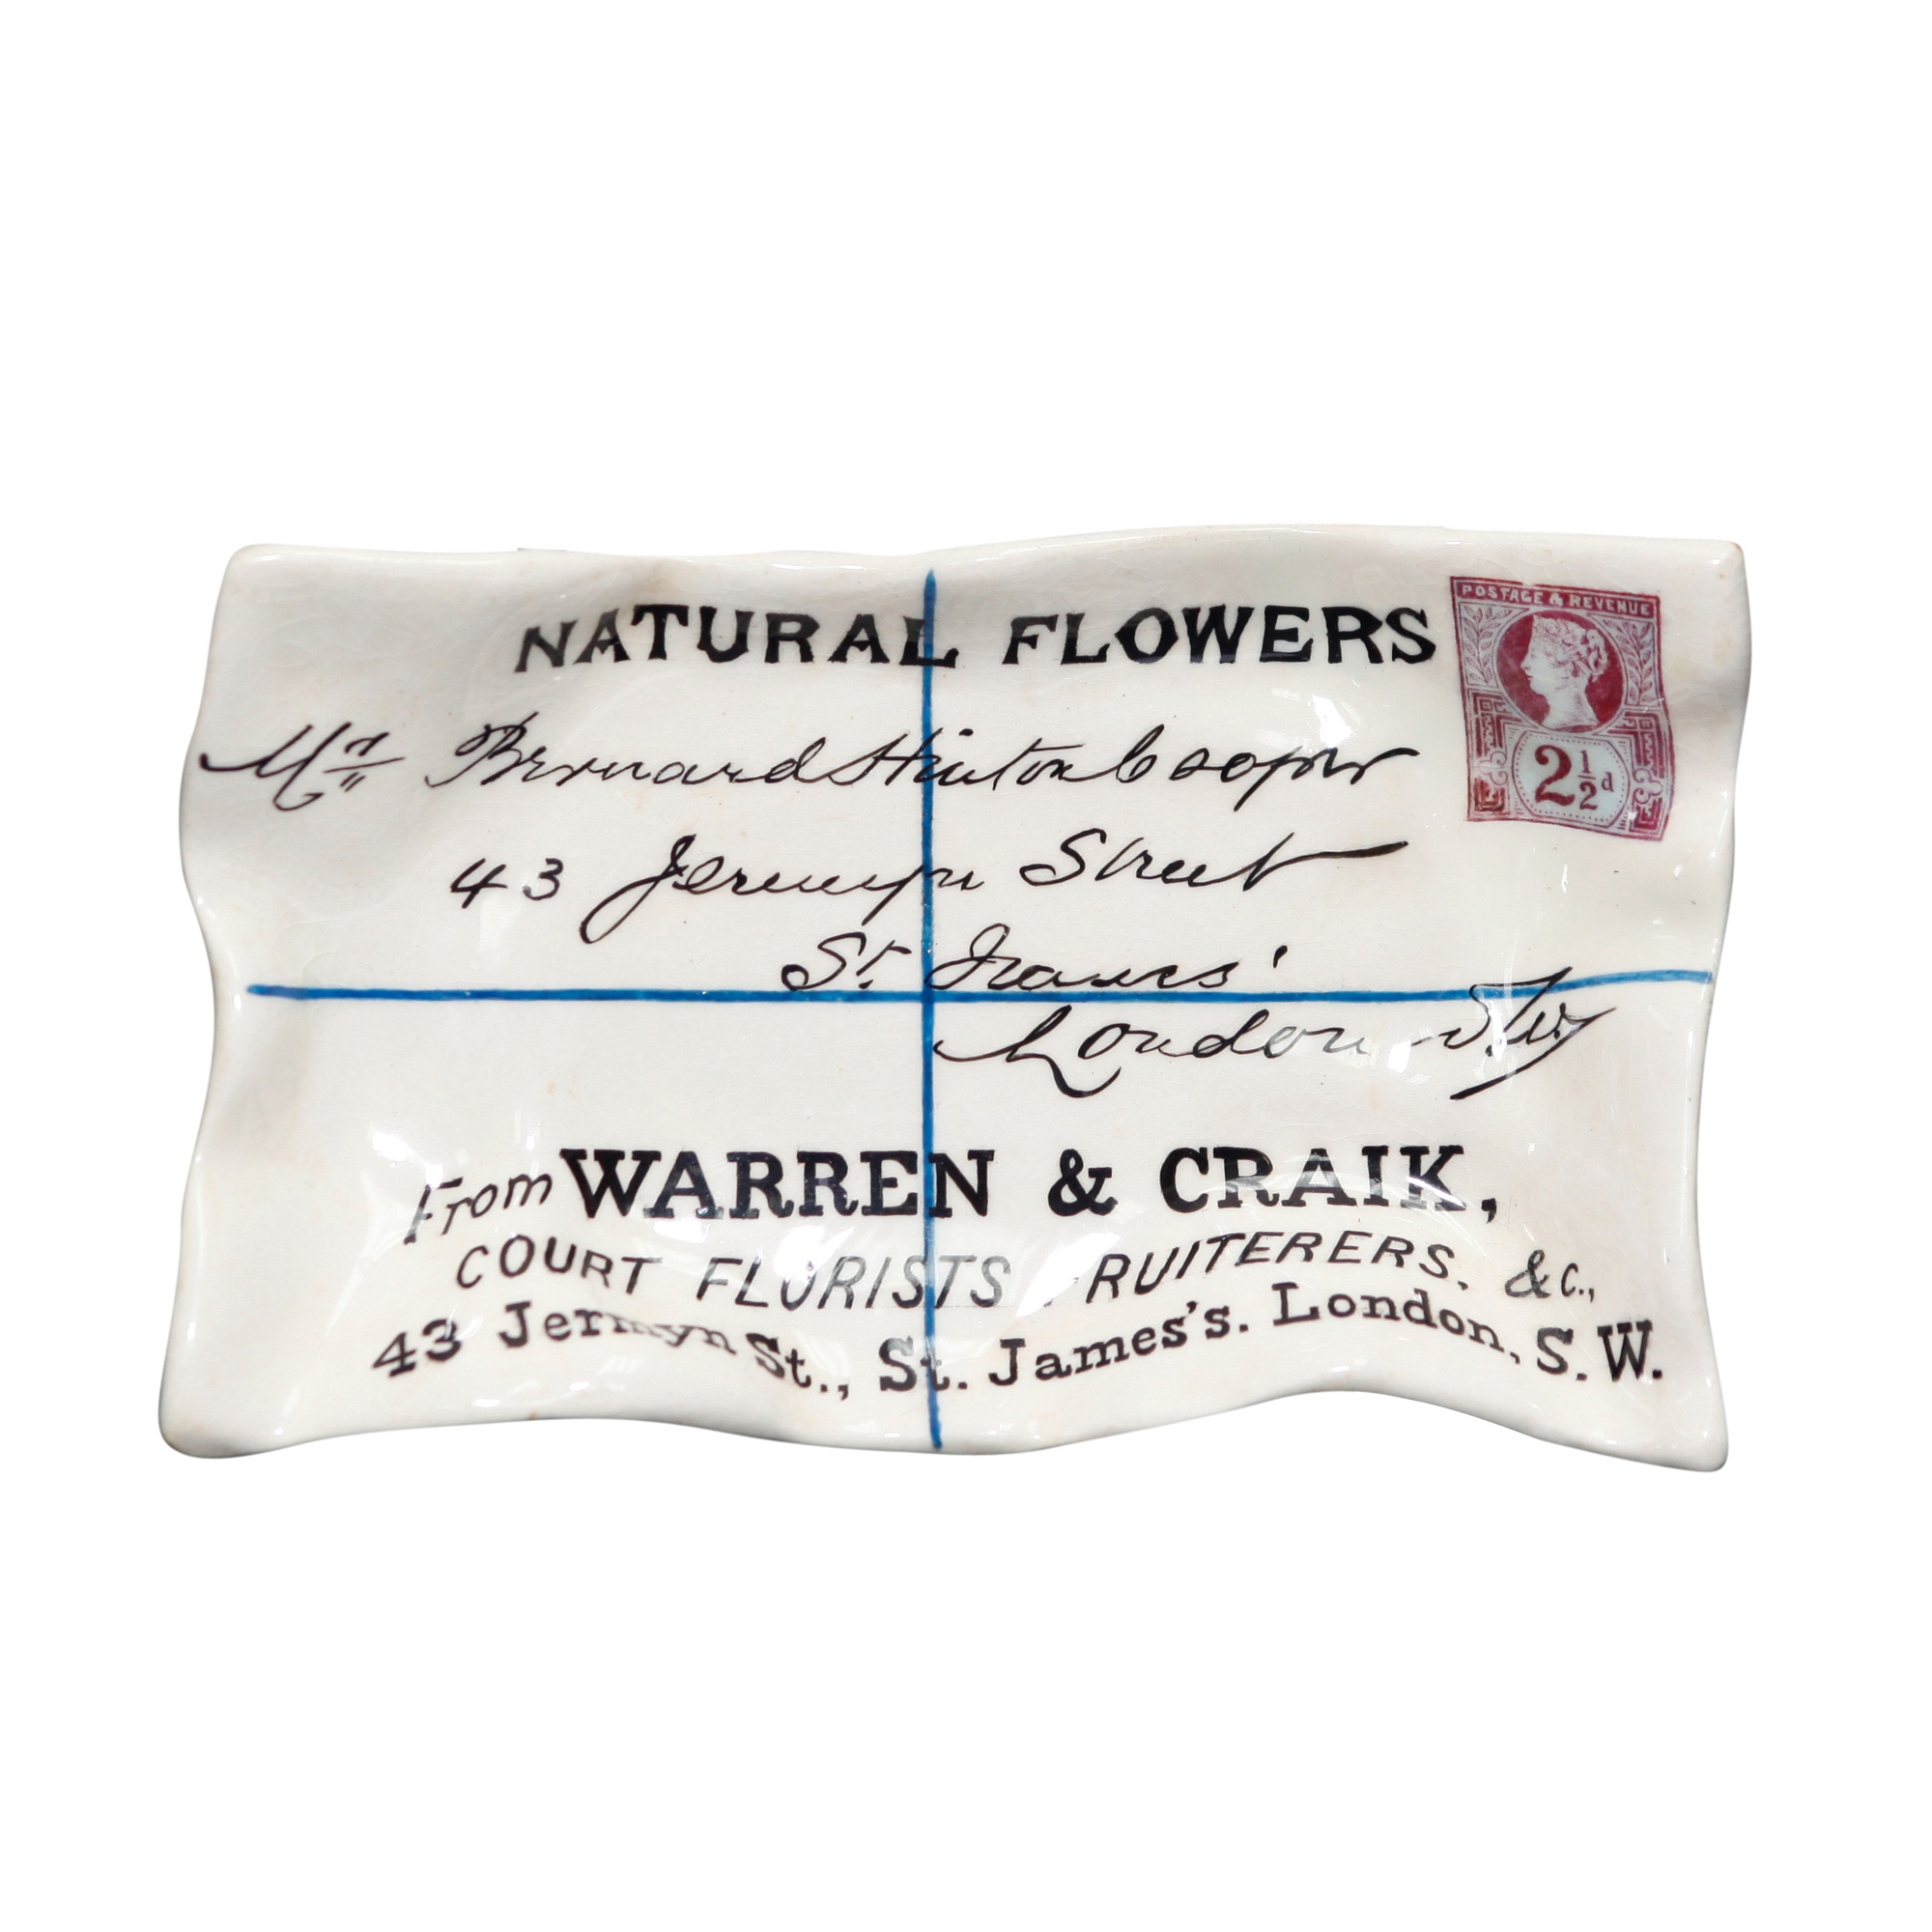 Natural Flower Advertising Ashtray